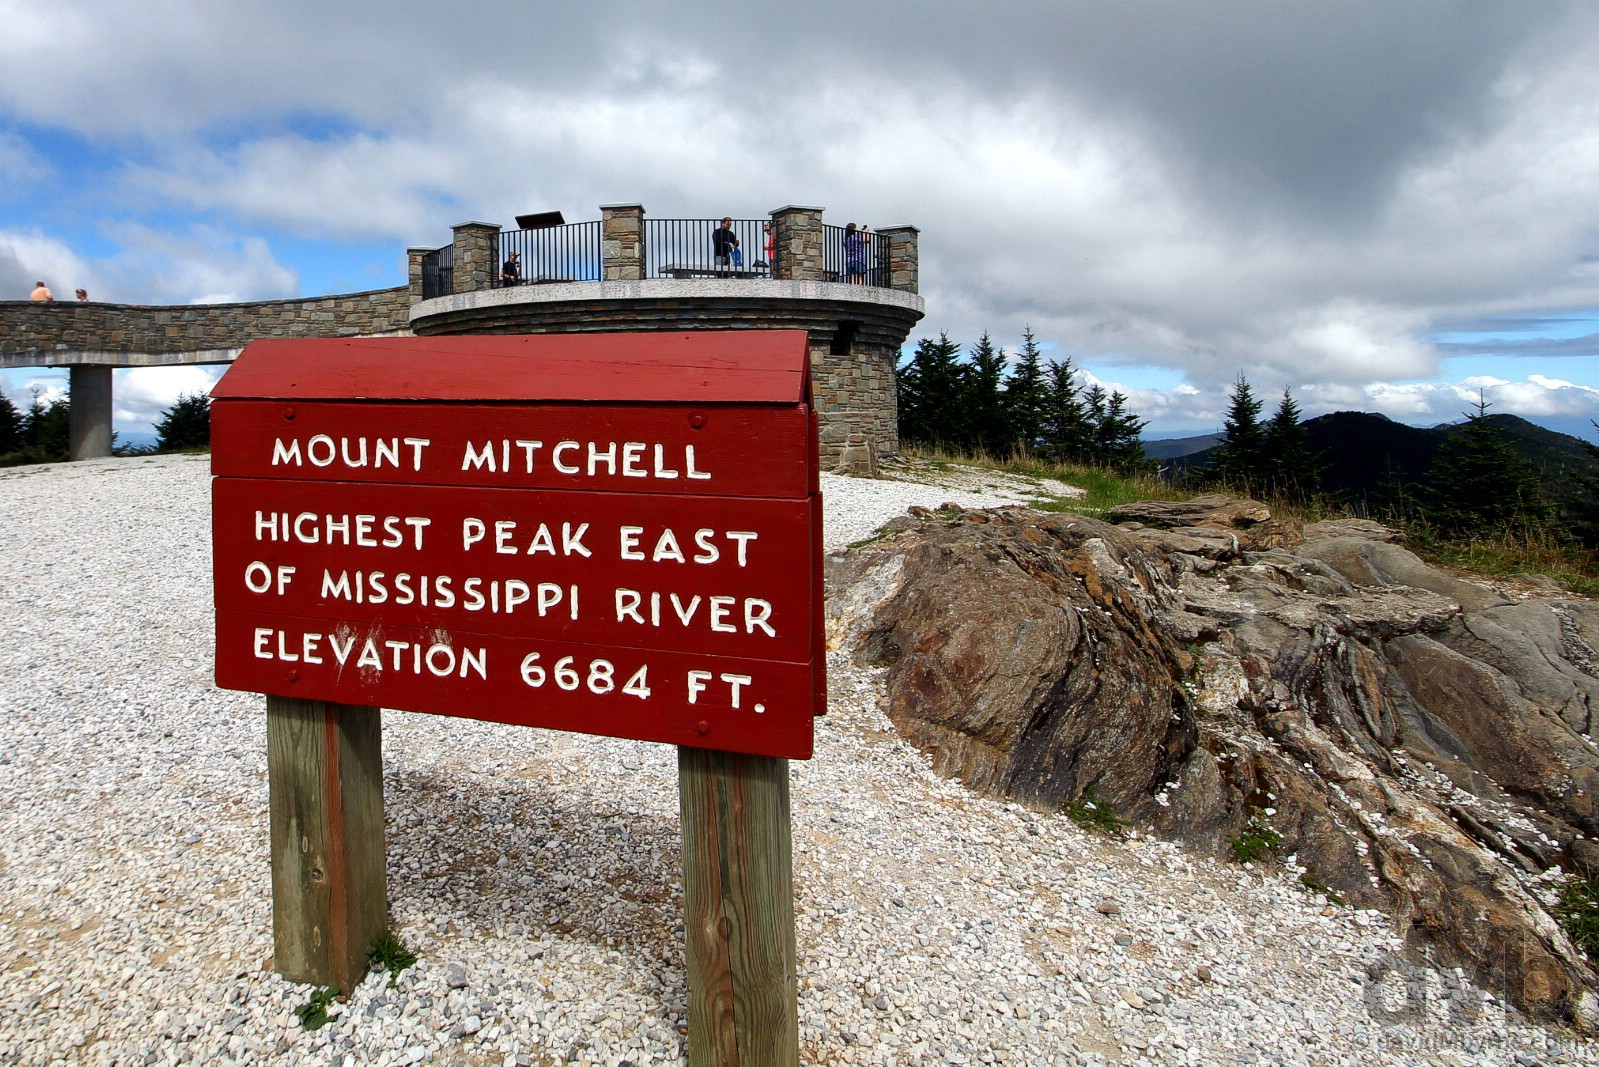 Mount Mitchel of Mount Mitchell State Park, Yancey County, North Carolina, USA. September 23, 2016.